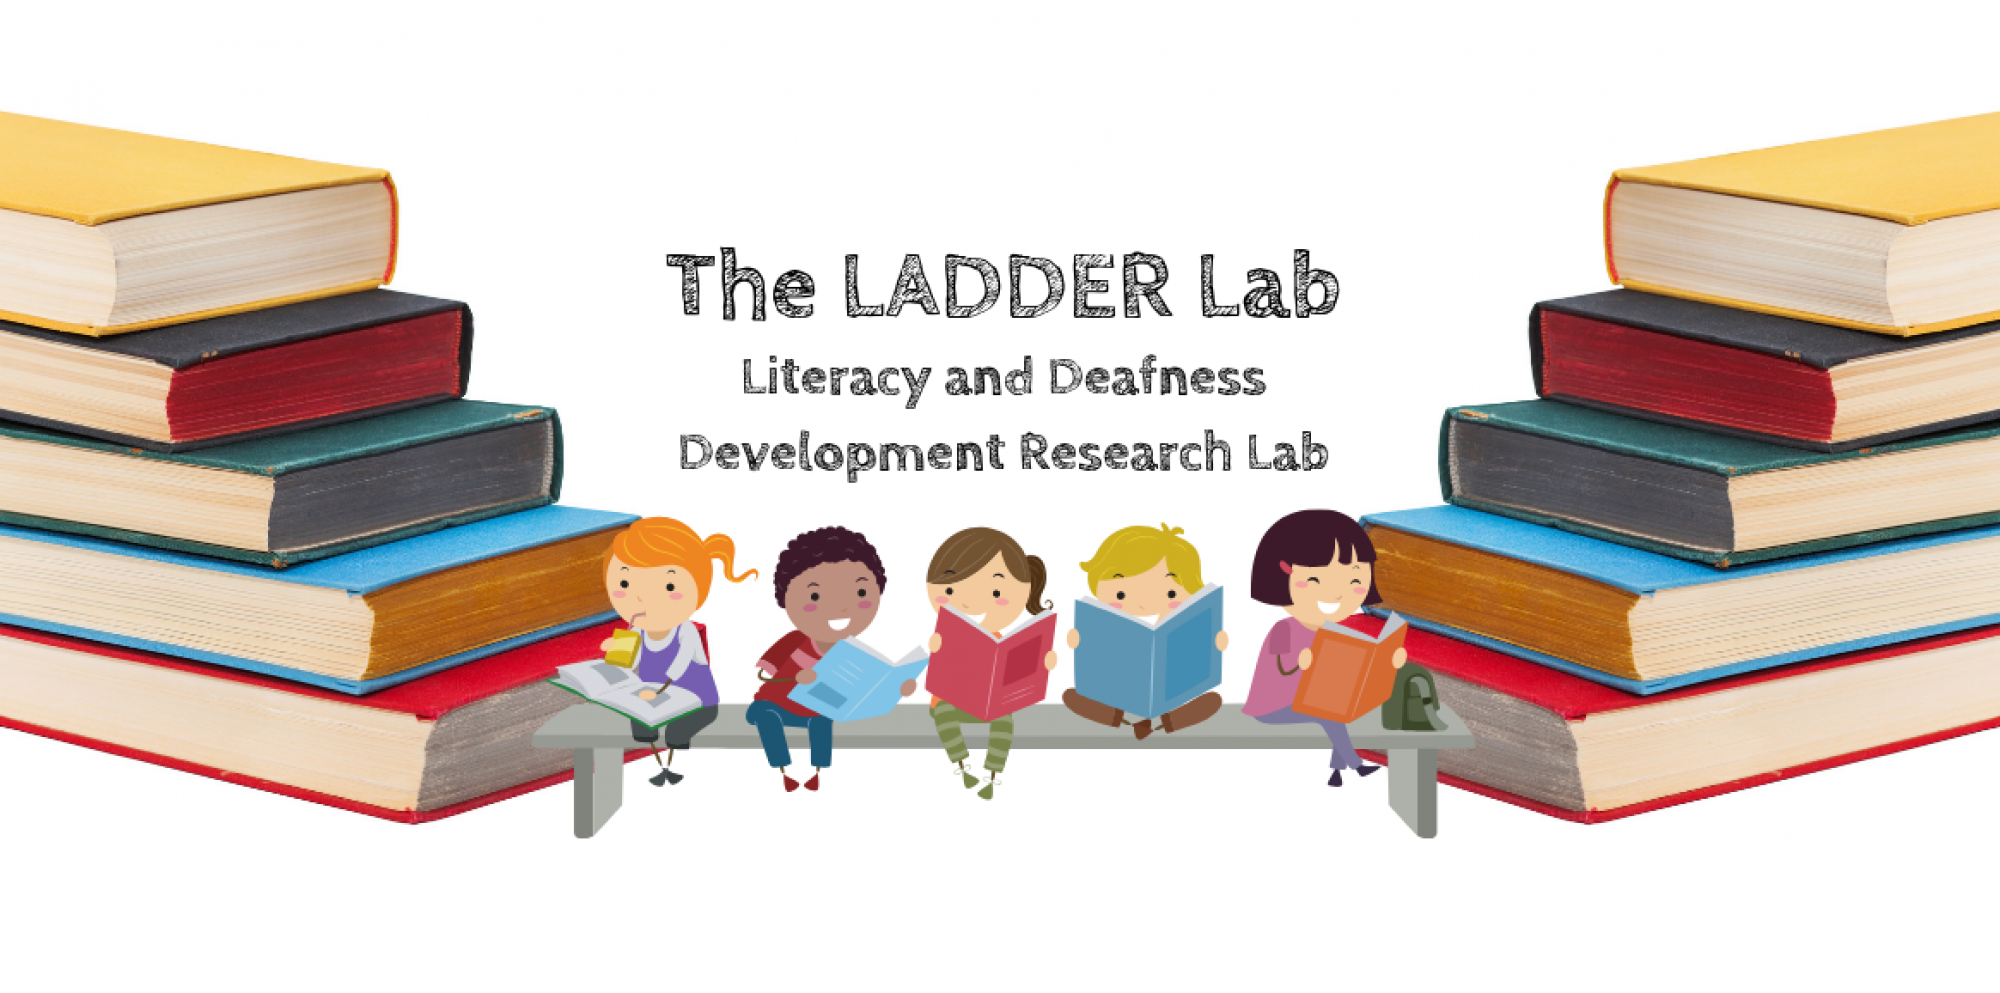 The Ladder Lab